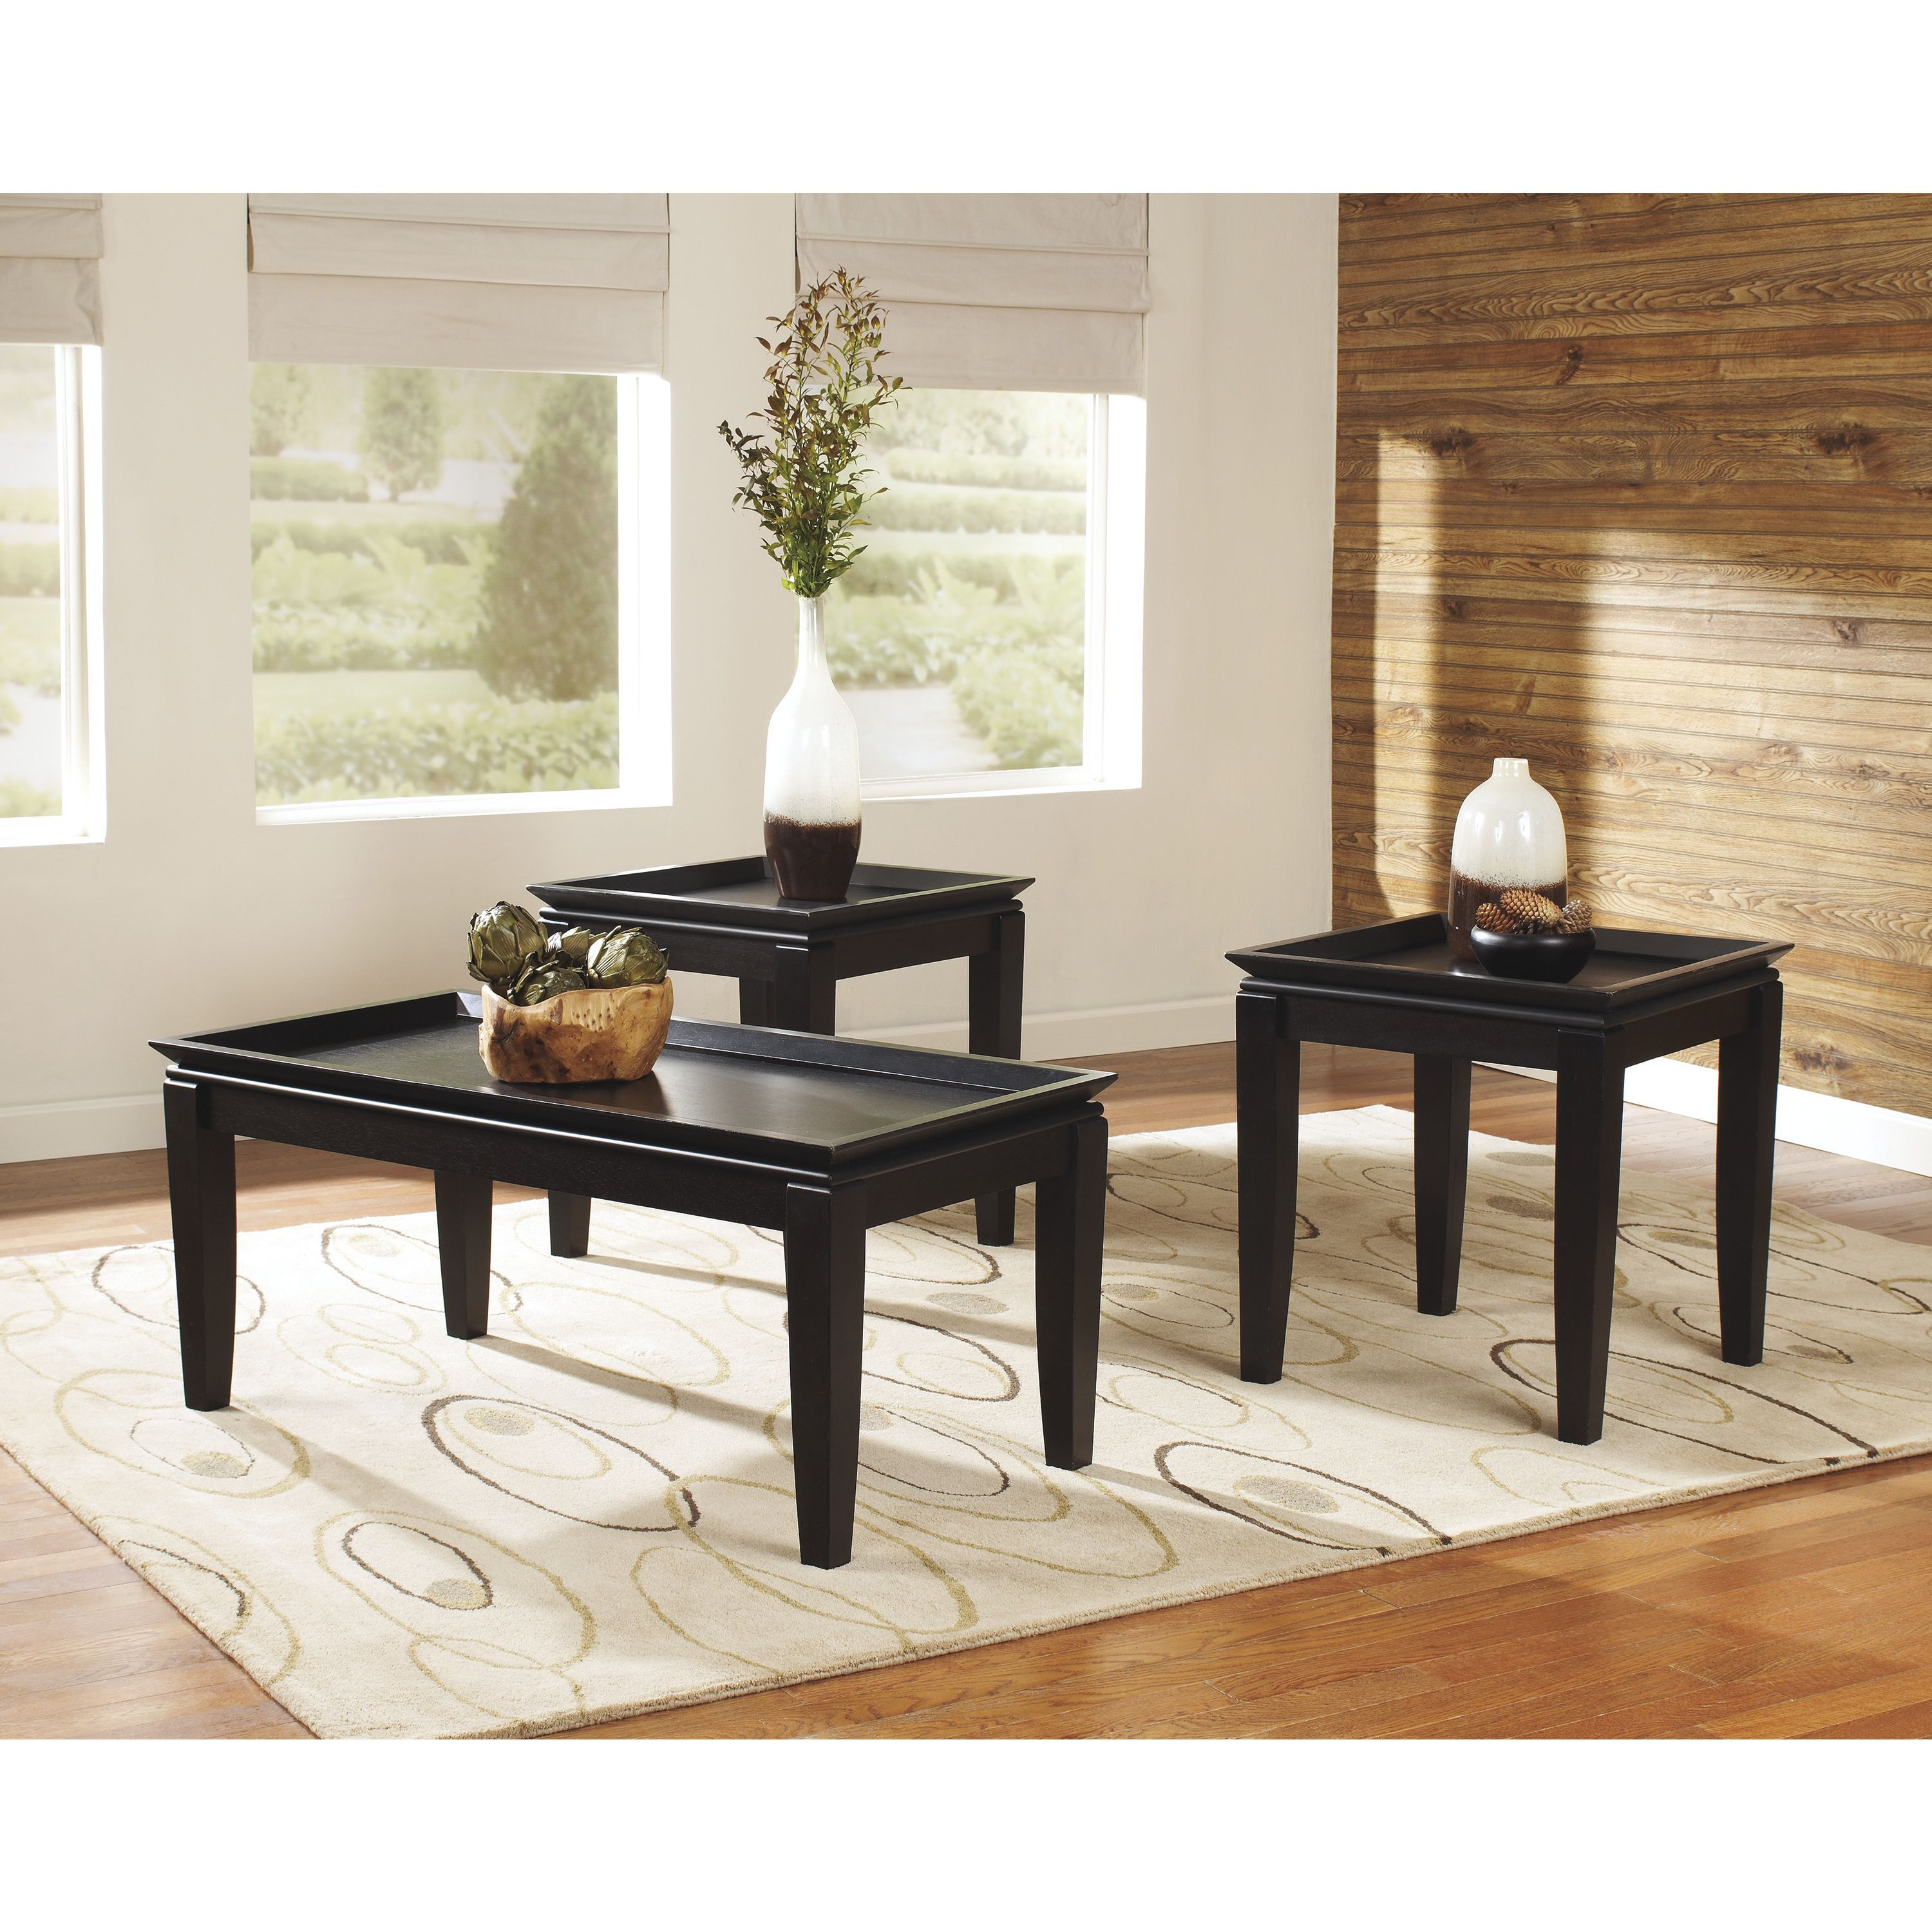 Signature Design By Ashley Delormy 3 Piece Occasional Table Set Almost Black Of